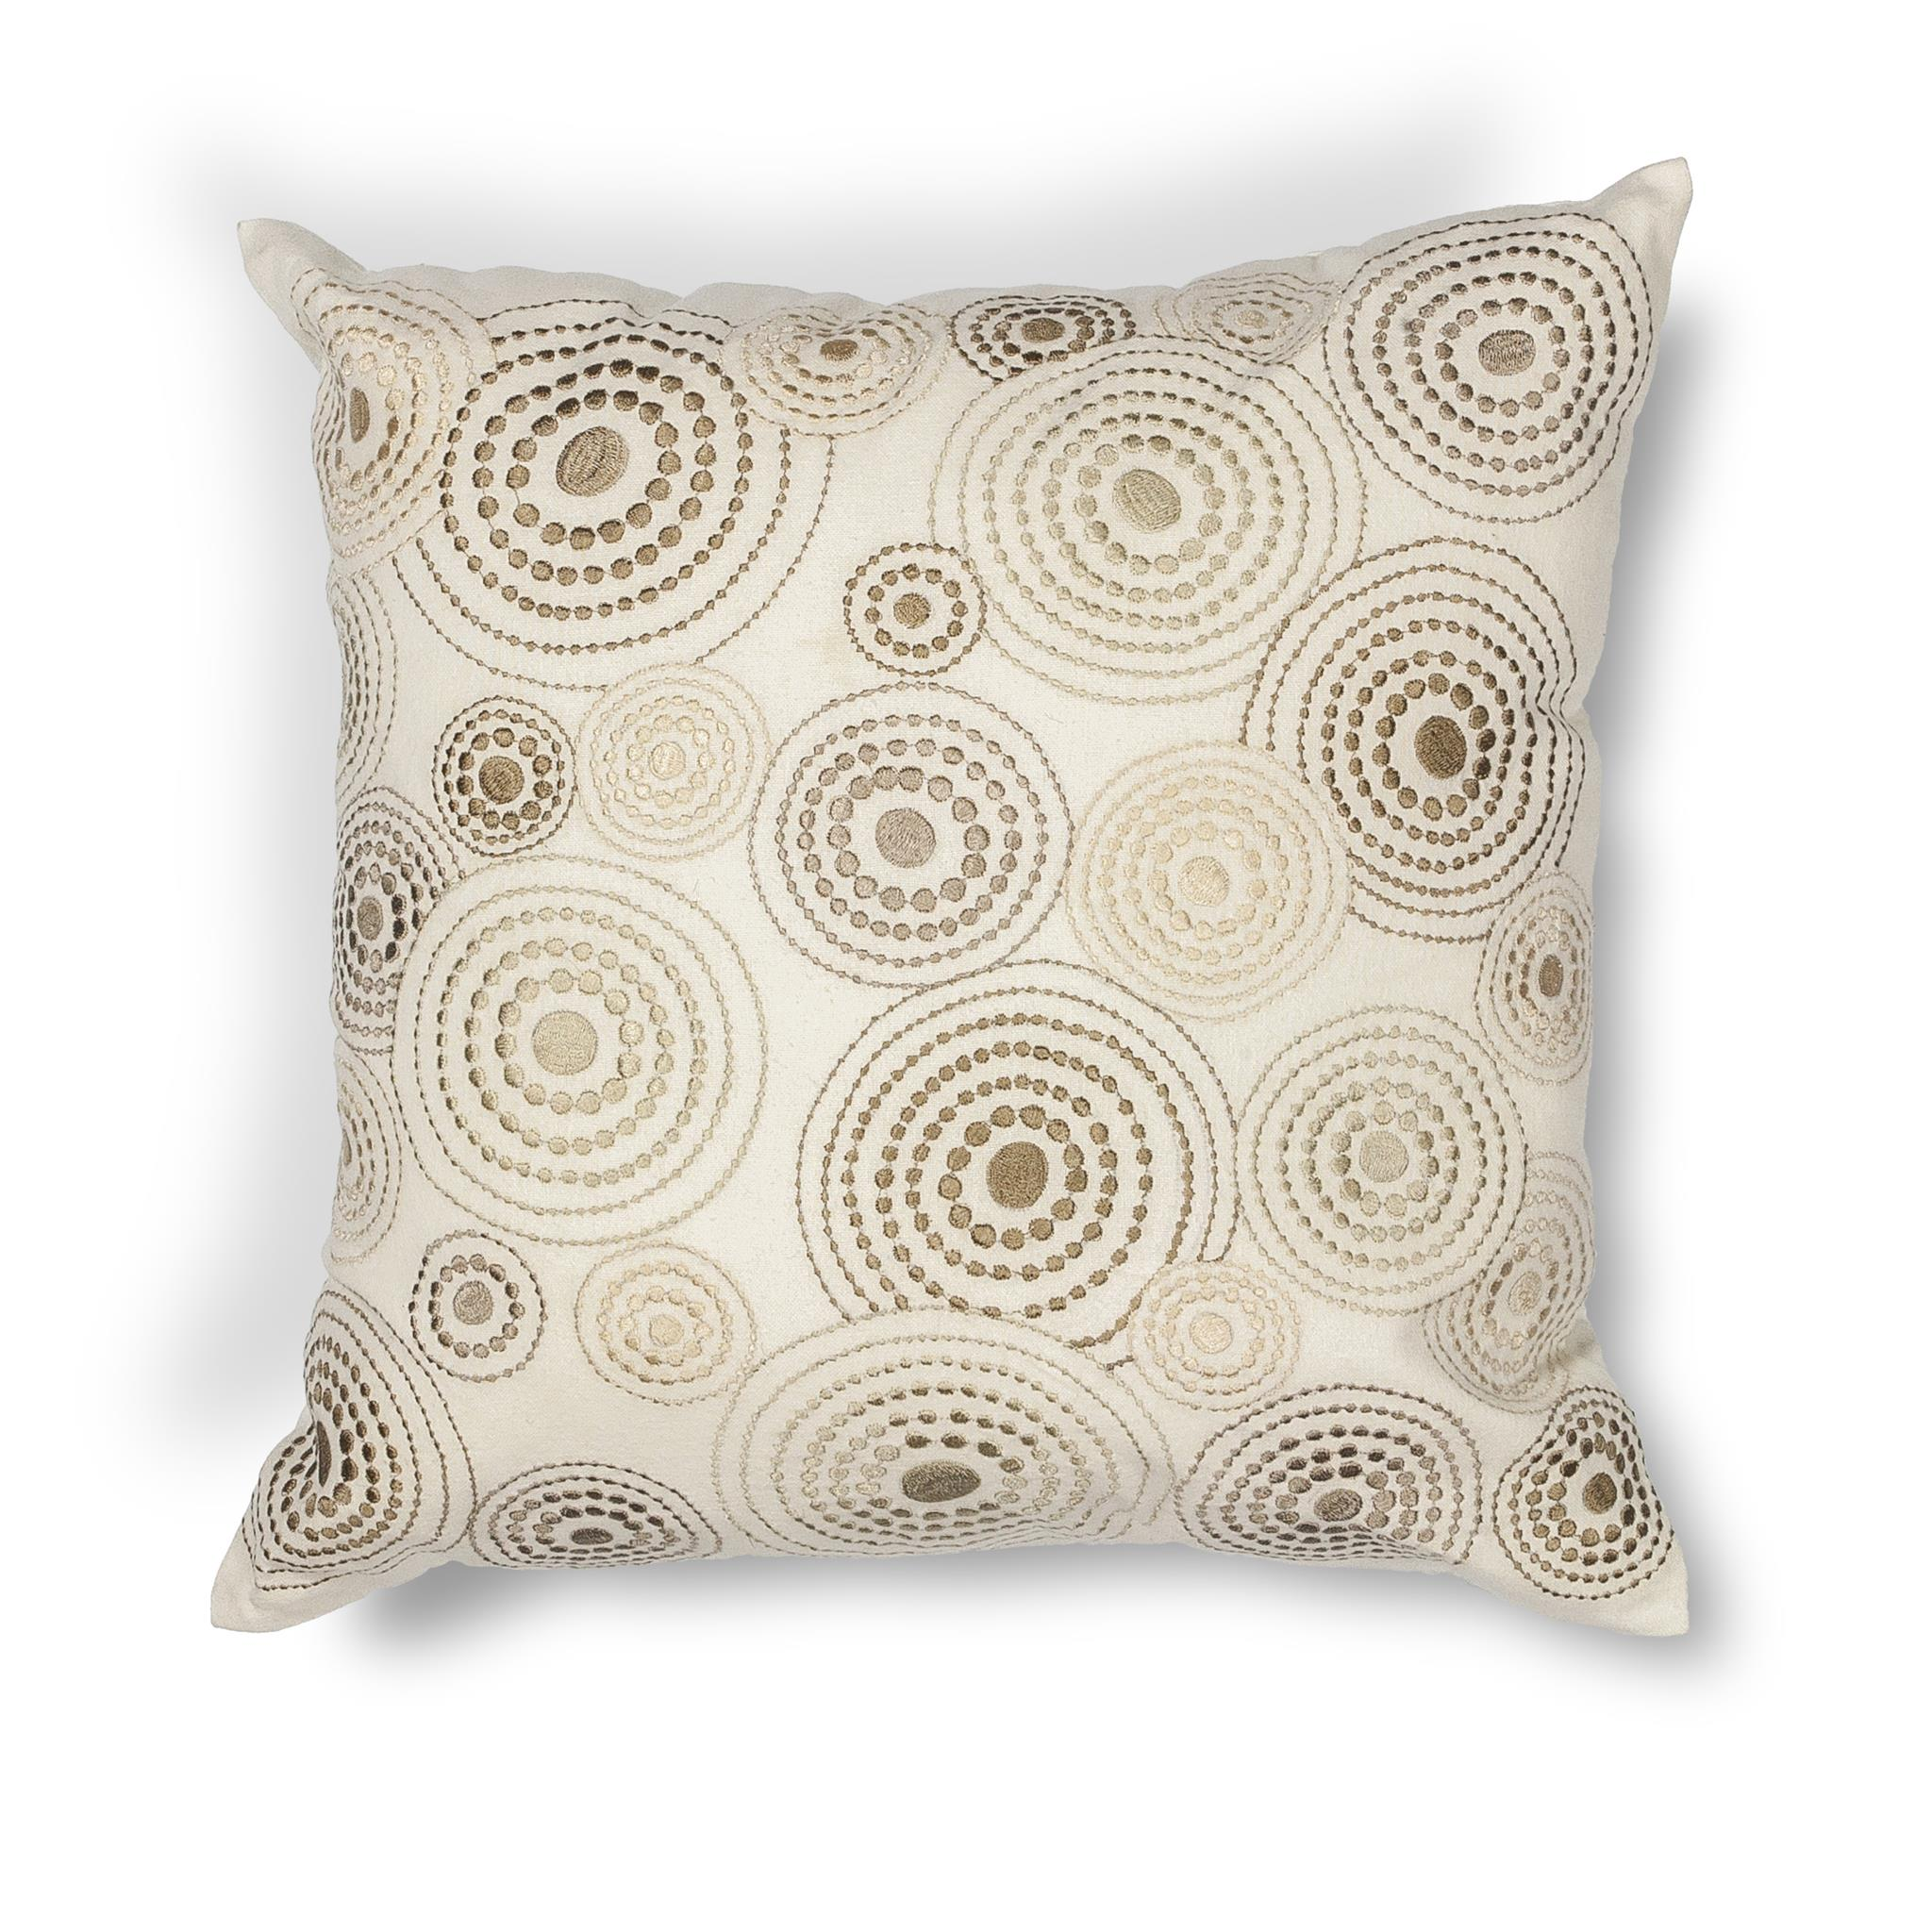 L186 Donny Osmond Home Ivory Concentric Pillow